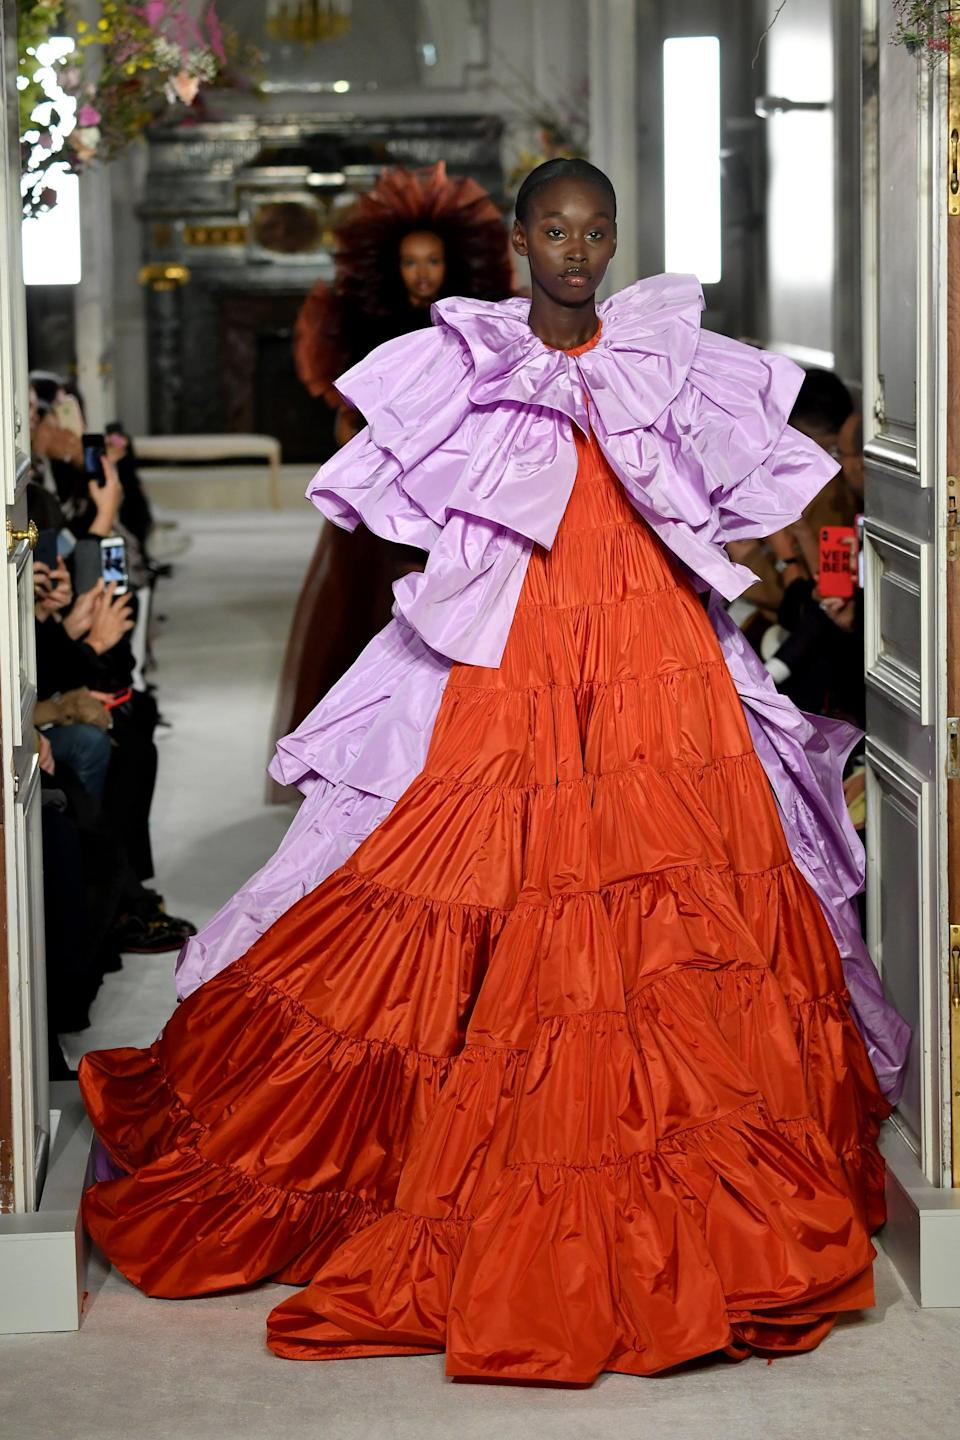 <p>At age three, Sabah Koj fled war-torn Sudan to settle in Australia where, many years later, she became the first African model in history to open a show at Mercedes Benz Fashion Week Australia. Since then, she has pushed to grow her career, walking for Armani, Miu Miu, and Balmain.</p>